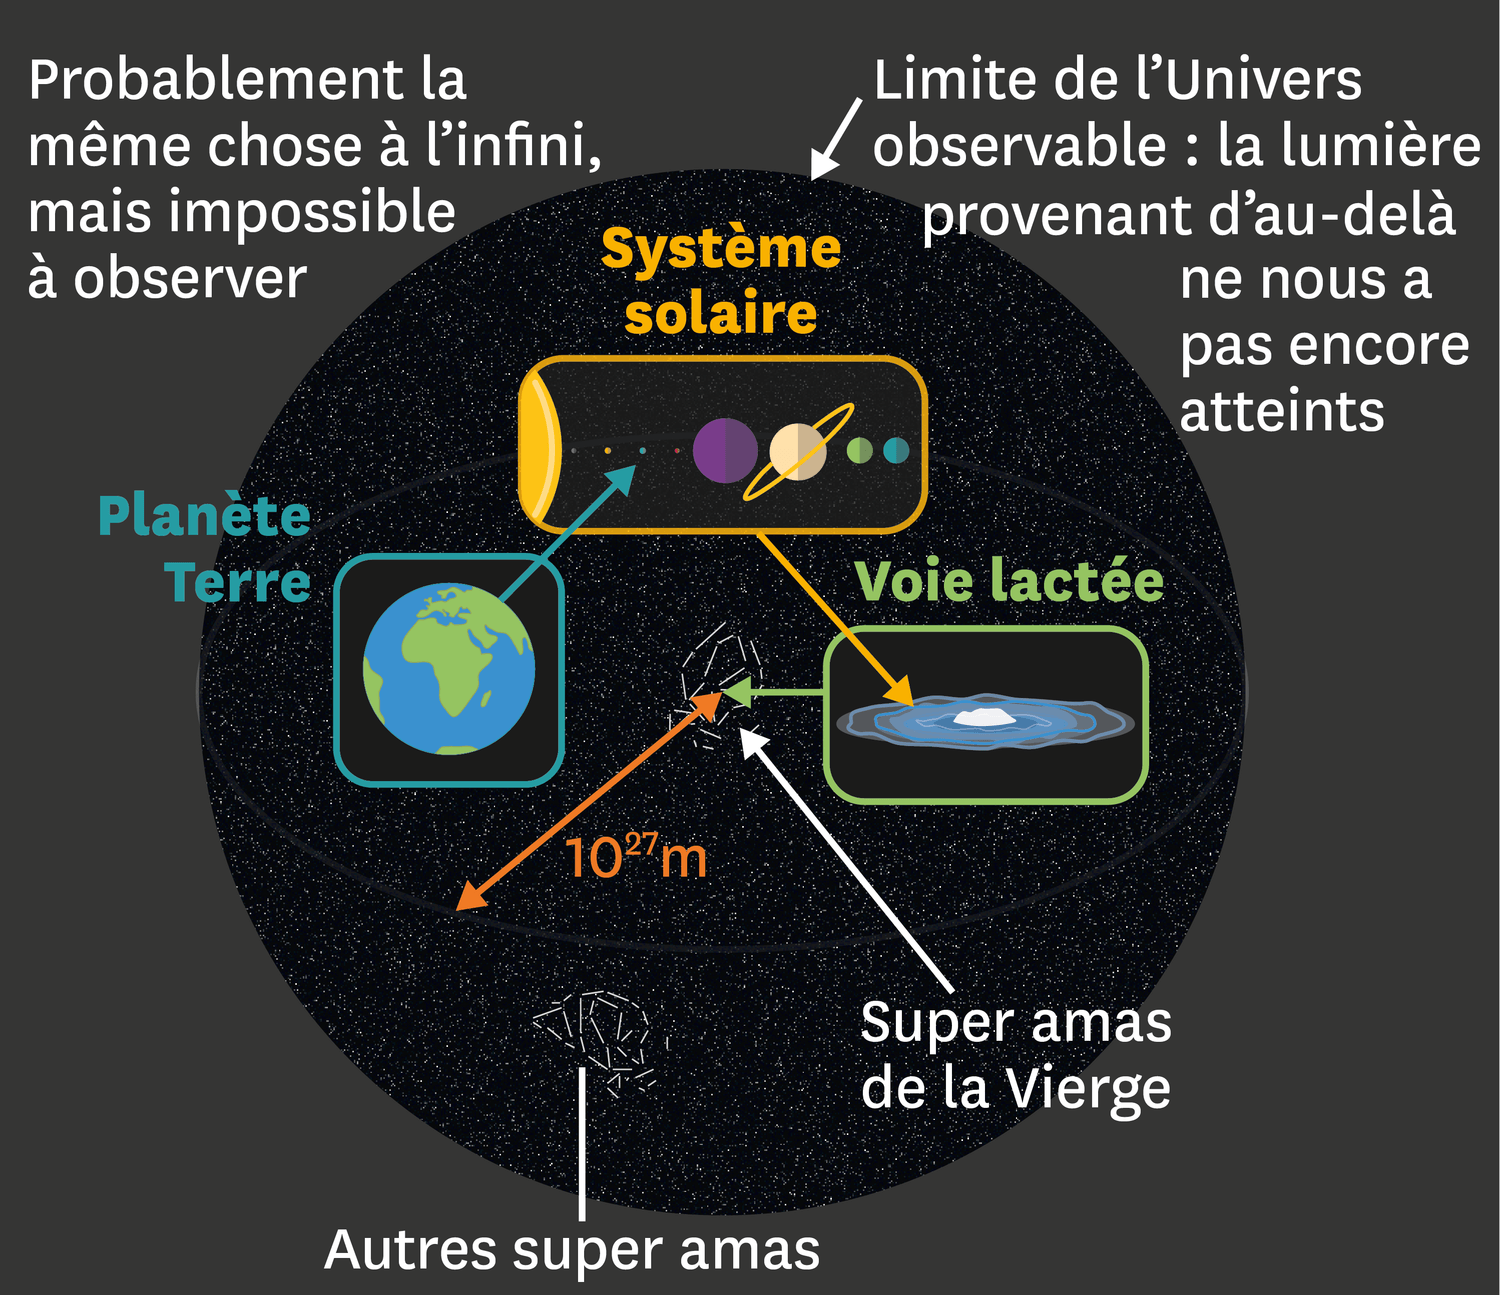 L'Univers observable.